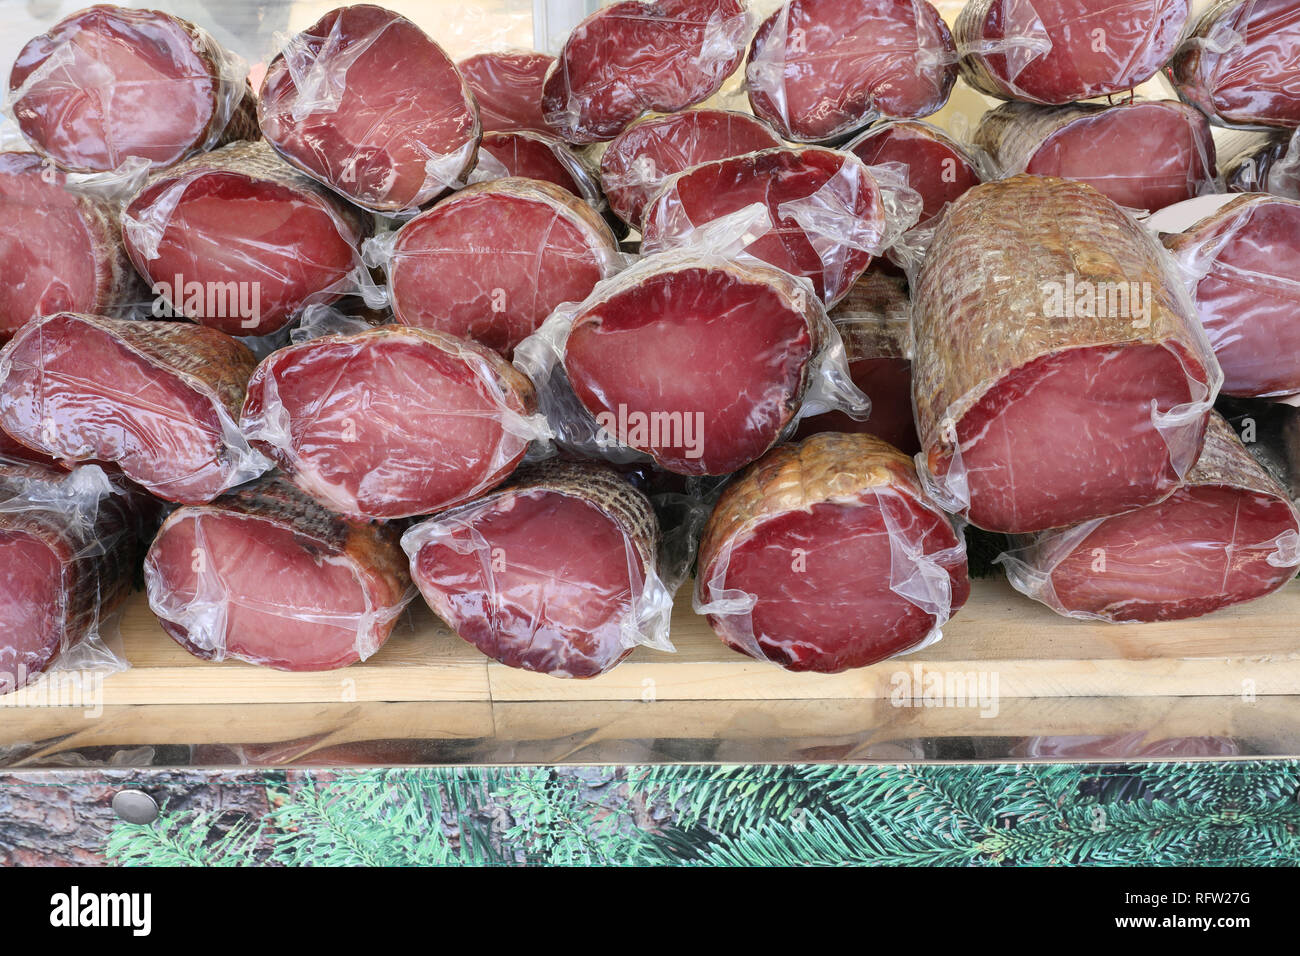 many smoked cold cuts for sale at italian kiosk - Stock Image